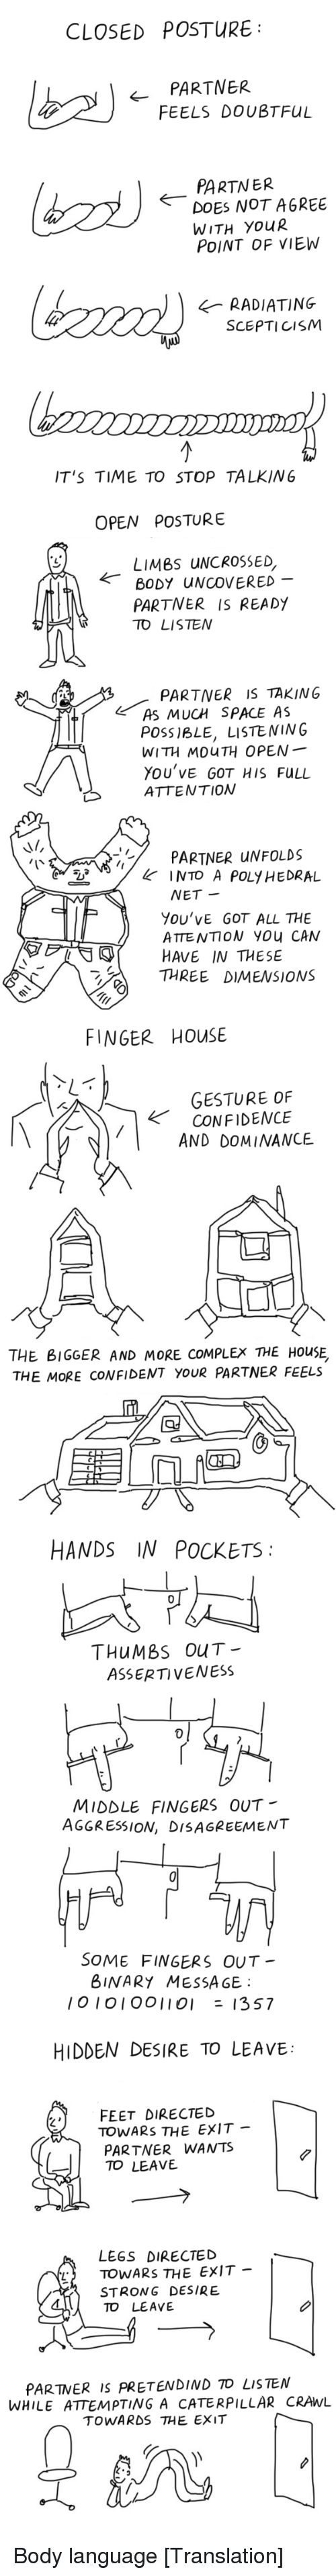 Complex, Confidence, and Fingering: CLOSED POSTURE  PARTNER  FEELS DOUBTFUL  PARTNER  DOES NOT AGREE  WITH YOUR  POINT OF VIEW  k RADIATING  SCEPTICISM  IT'S TIME TO STOP TALKING   OPEN POSTURE  LIMBS UNCROSSED  BODY UNCOVERED  PARTNER IS READY  TO LISTEN  PARTNER IS TAKING  AS MUCH SPACE AS  POSSIBLE, LISTENING  WITH MOUTH OPEN  you'VE GOT HIS FULL  ATTENTION  y PARTNER UNFOLD  s  k INTO A POLY HEDRAL  NET  YOU'VE GOT ALL THE  ATTENTION You CAN  HAVE IN THE SE  A THREE DIMENSIONS   FINGER HOUSE  GESTURE OF  CONFIDENCE  AND DOMINANCE  THE BIGGER AND MORE CoMPLEX THE HousE  THE MORE CONFIDENT YouR PARTNER FEELS   HANDS IN POCKETS  THUMBS OUT  ASSERTIVENESS  MIDDLE FINGERS OUT  AGGRESSION DISAGREEMENT  SOME FINGERS OUT  BINARY MESSAGE  IO IO I OOII 01 13 57   HIDDEN DESIRE TO LEAVE  FEET DIRECTED  TOWARS THE EXIT  PARTNER WANTS  TO LEAVE  LEGS DIRECTED  TOWARS THE EXIT  STRONG DESIRE  TO LEAVE  PARTNER IS PRETENDIND TD LISTEN  WHILE ATTEMPTING A CATERPILLAR CRAWL  TOWARDS THE EXIT Body language [Translation]